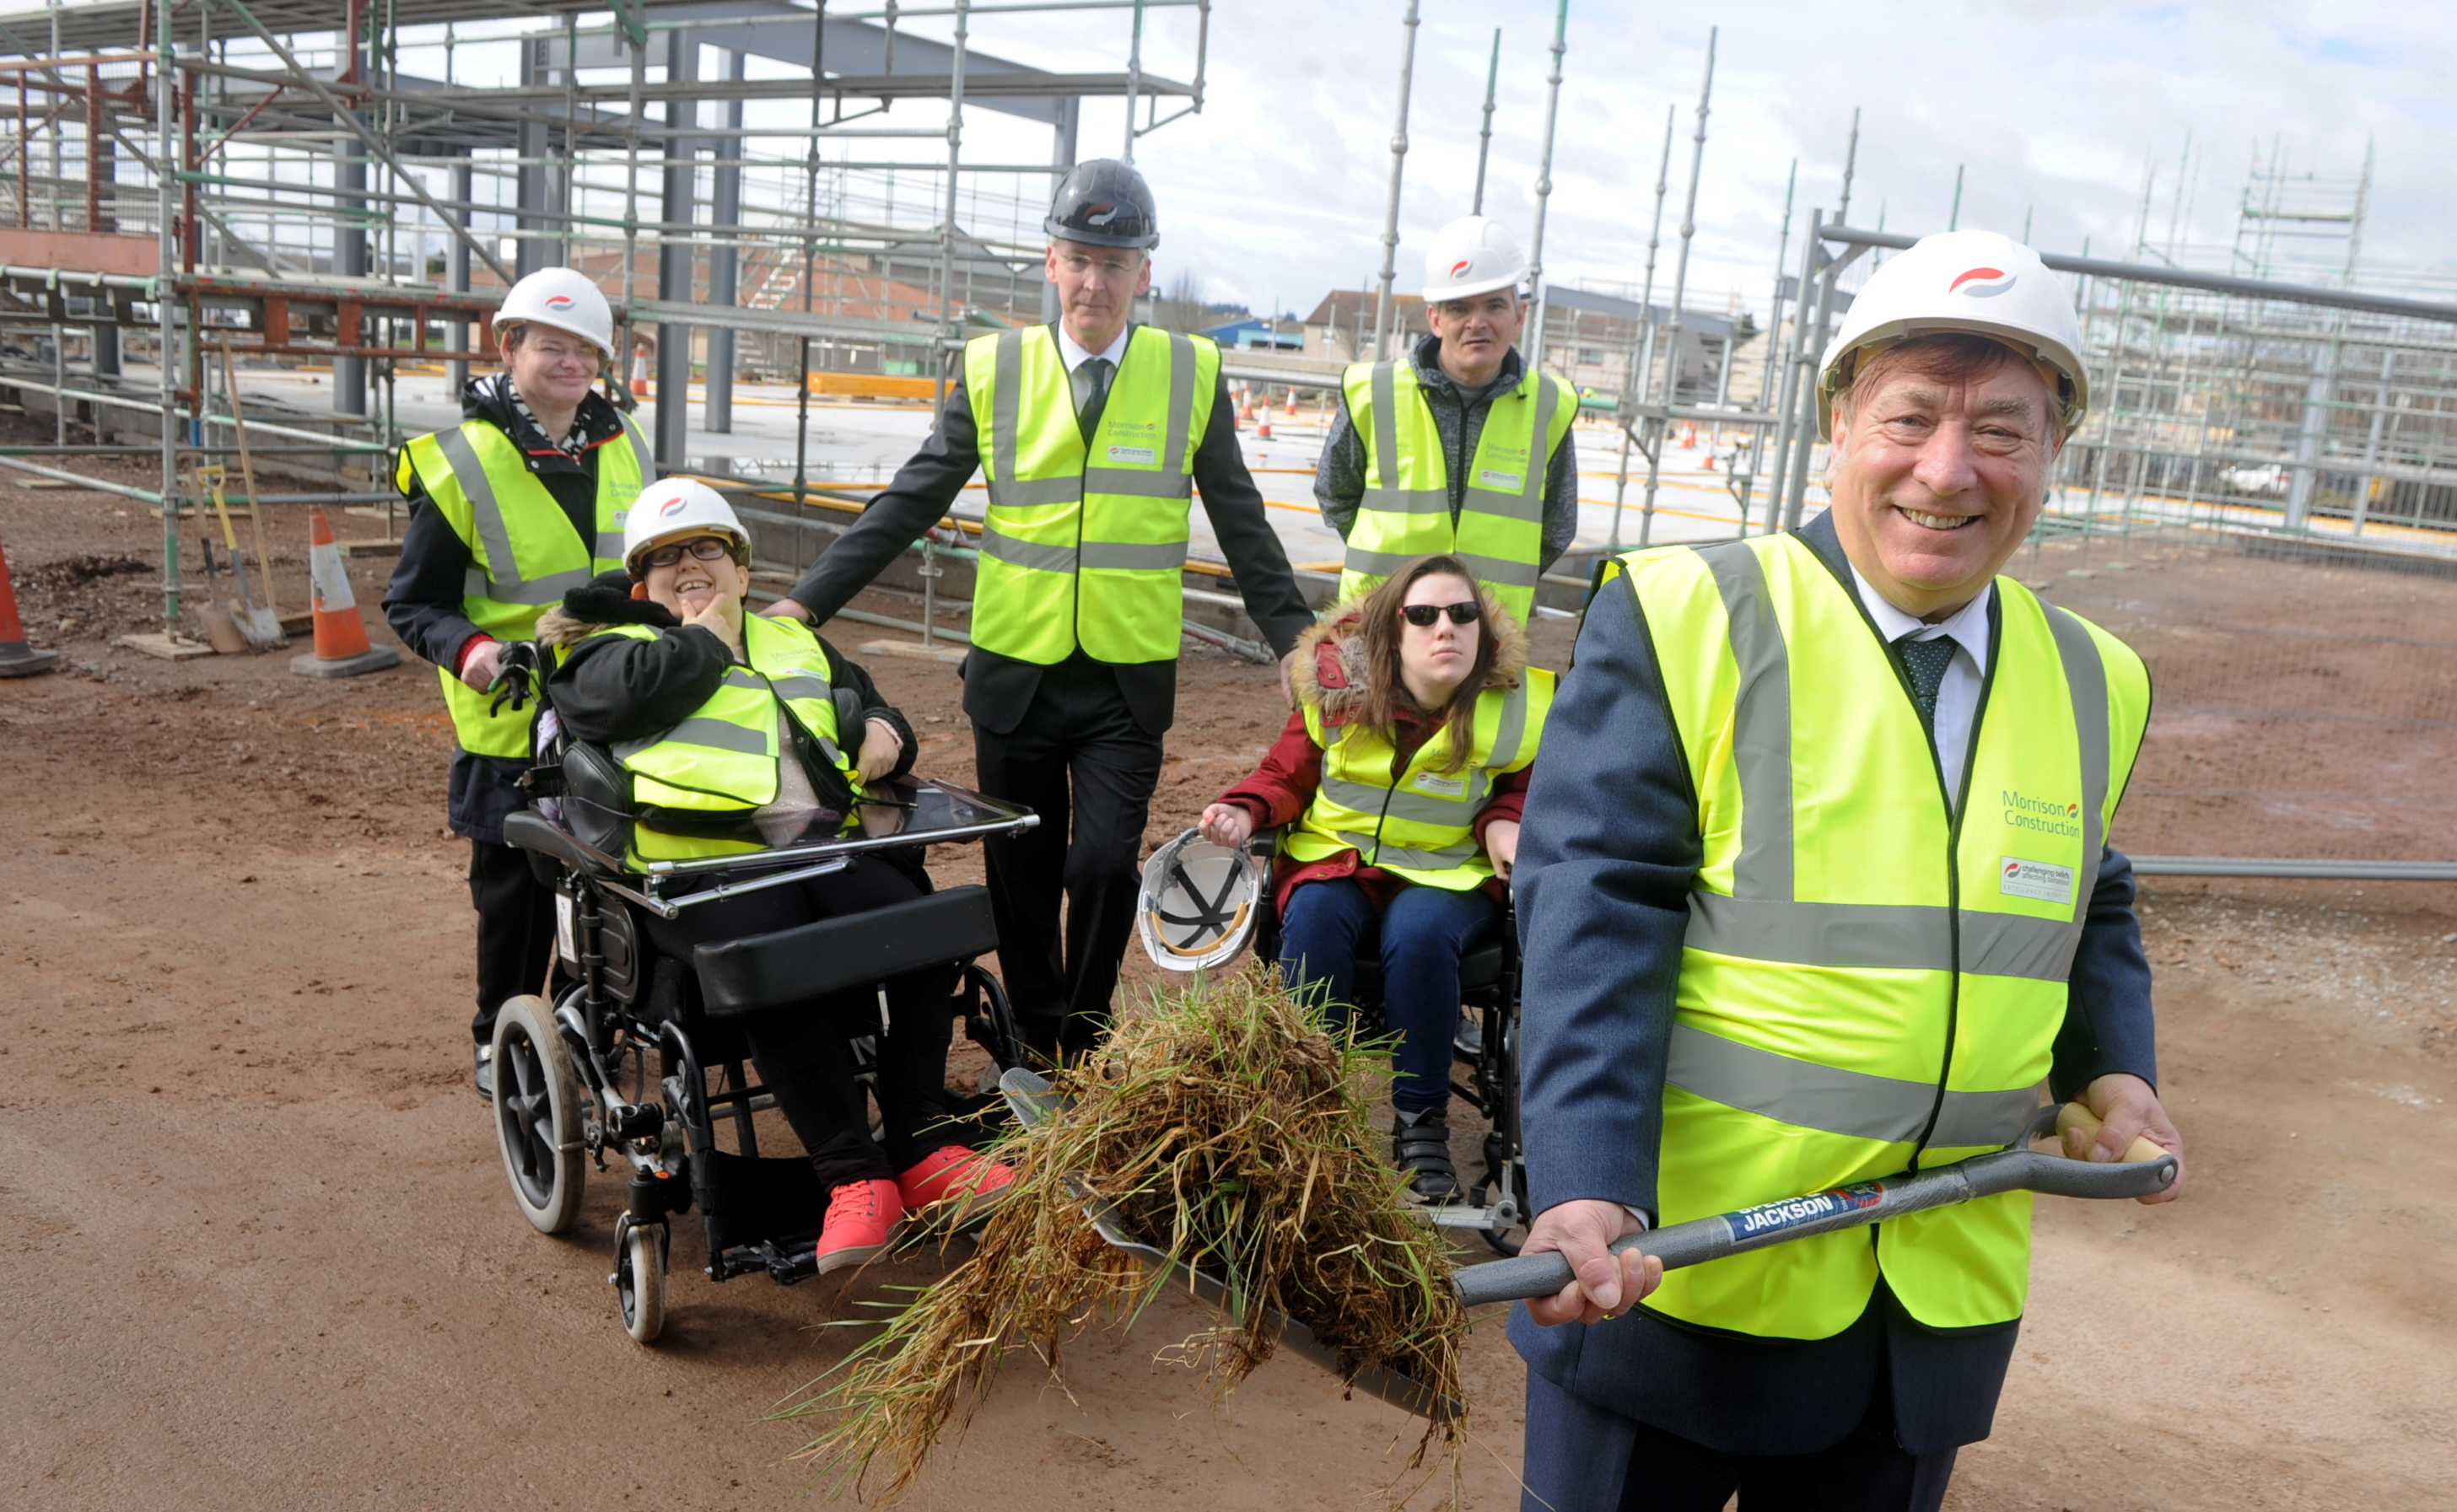 Cllr Ironside with some of the people who will use the new facility.